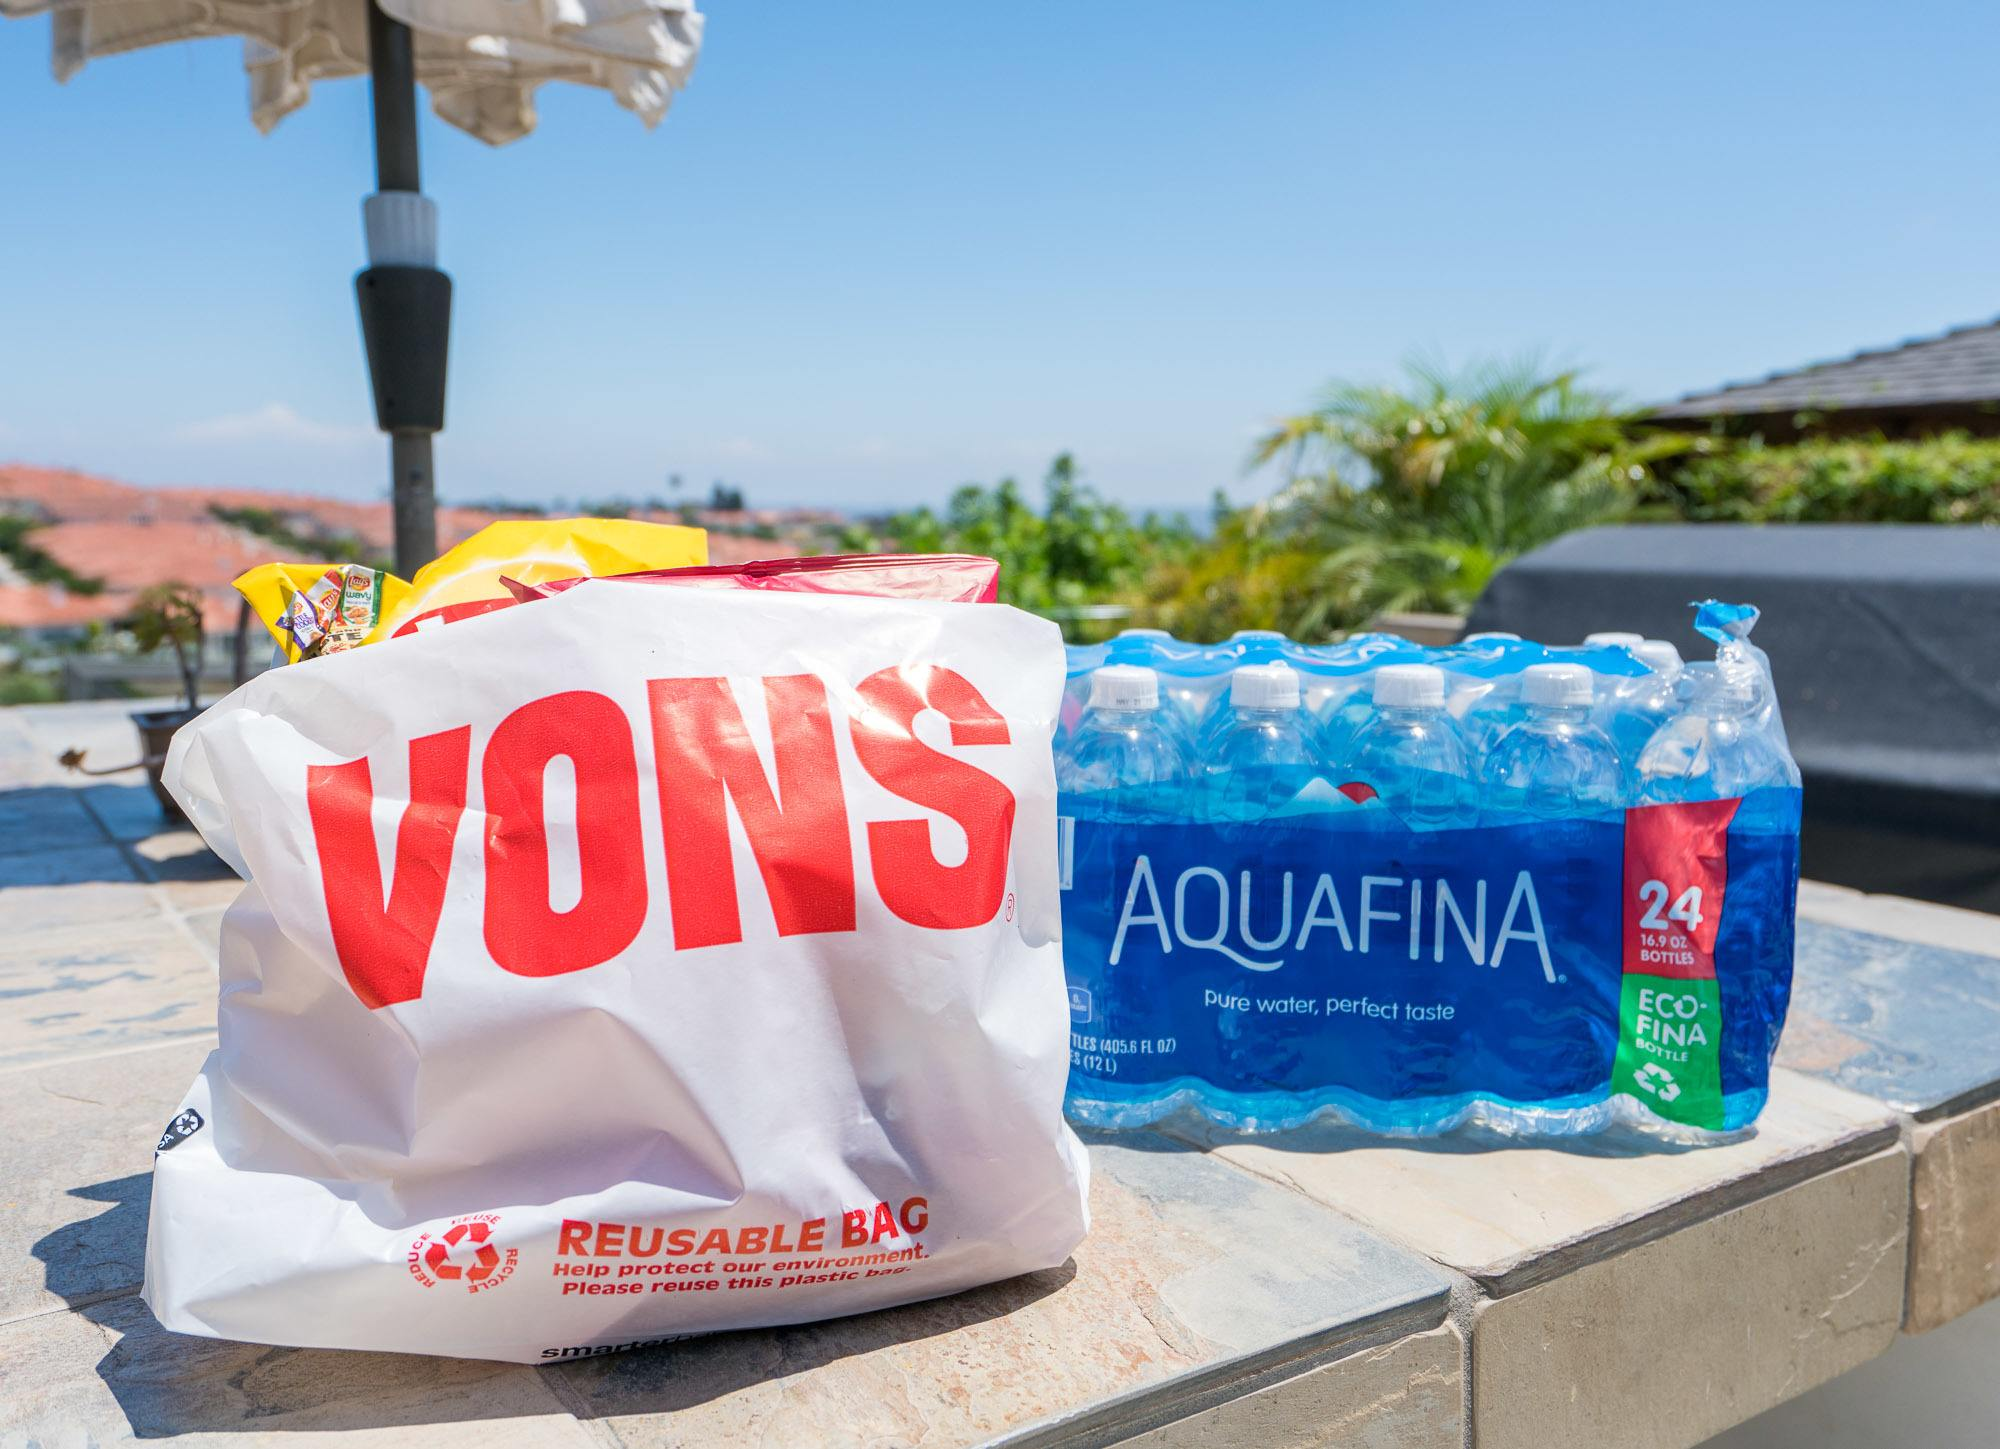 Fuel your summer adventure at VONS with participating products.